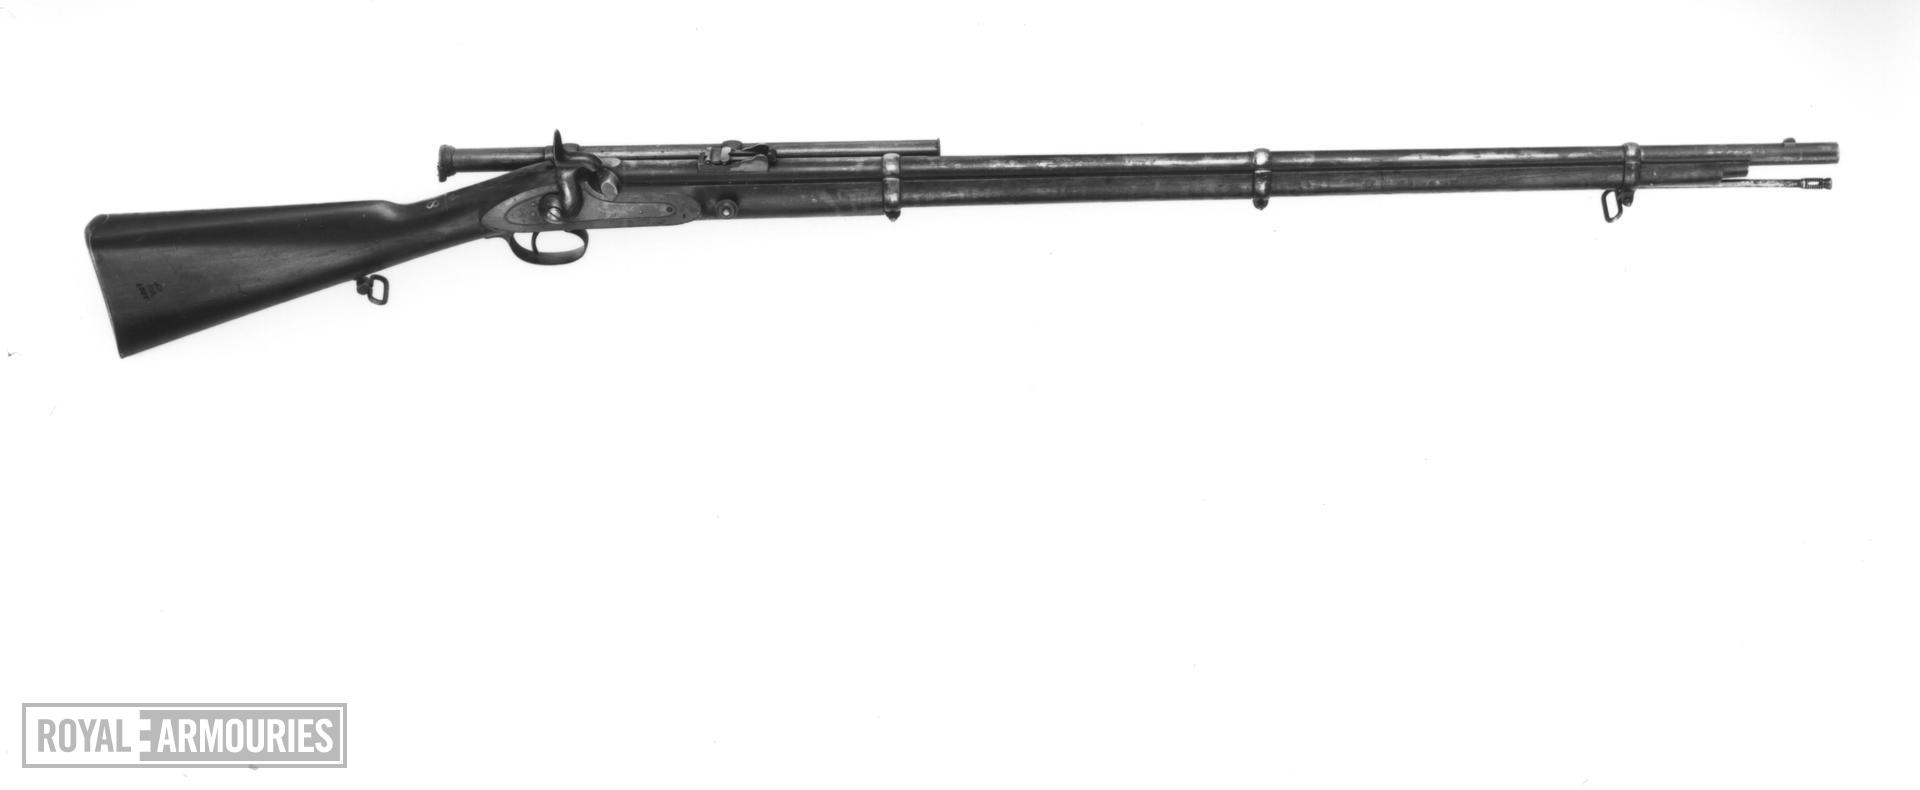 Percussion muzzle-loading rifle - Whitworth Pattern For trials Subsequently fitted with Davidson's telescopic sight